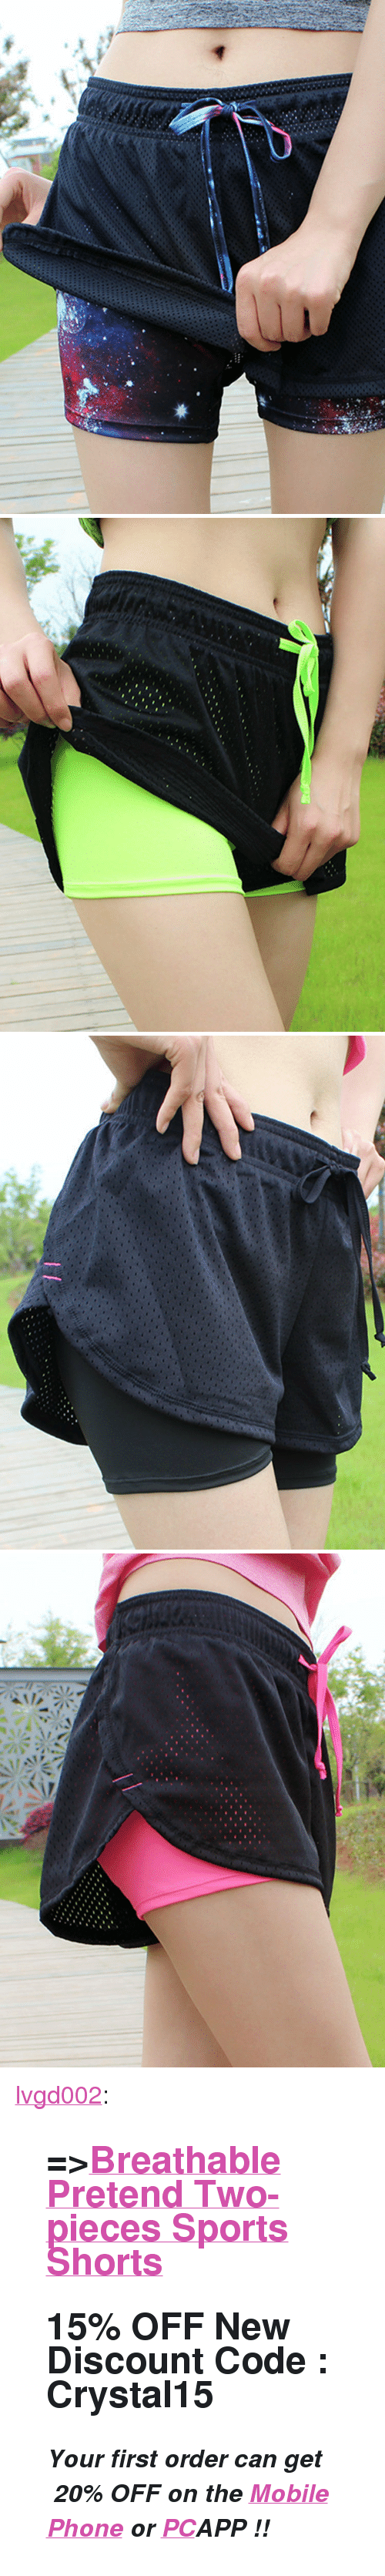 """First Order: <p><a href=""""https://lvgd002.tumblr.com/post/172305607752/breathable-pretend-two-pieces-sports-shorts-15"""" class=""""tumblr_blog"""">lvgd002</a>:</p><blockquote> <h2><b>=&gt;<a href=""""https://goo.gl/AKH6UN"""">Breathable Pretend Two-pieces Sports Shorts</a> <br/></b></h2> <h2> <b>15% OFF </b>New Discount Code : <b>Crystal15</b> </h2> <p><i><b><b><b>✧Your first order can get </b><b><i>20% OFF</i></b><b> on the </b><a href=""""https://goo.gl/D9rzDp""""><b>Mobile Phone</b></a><b> or </b><b><a href=""""https://goo.gl/ivq4H5"""">PC</a></b><b>APP !!</b></b></b></i></p> </blockquote>"""